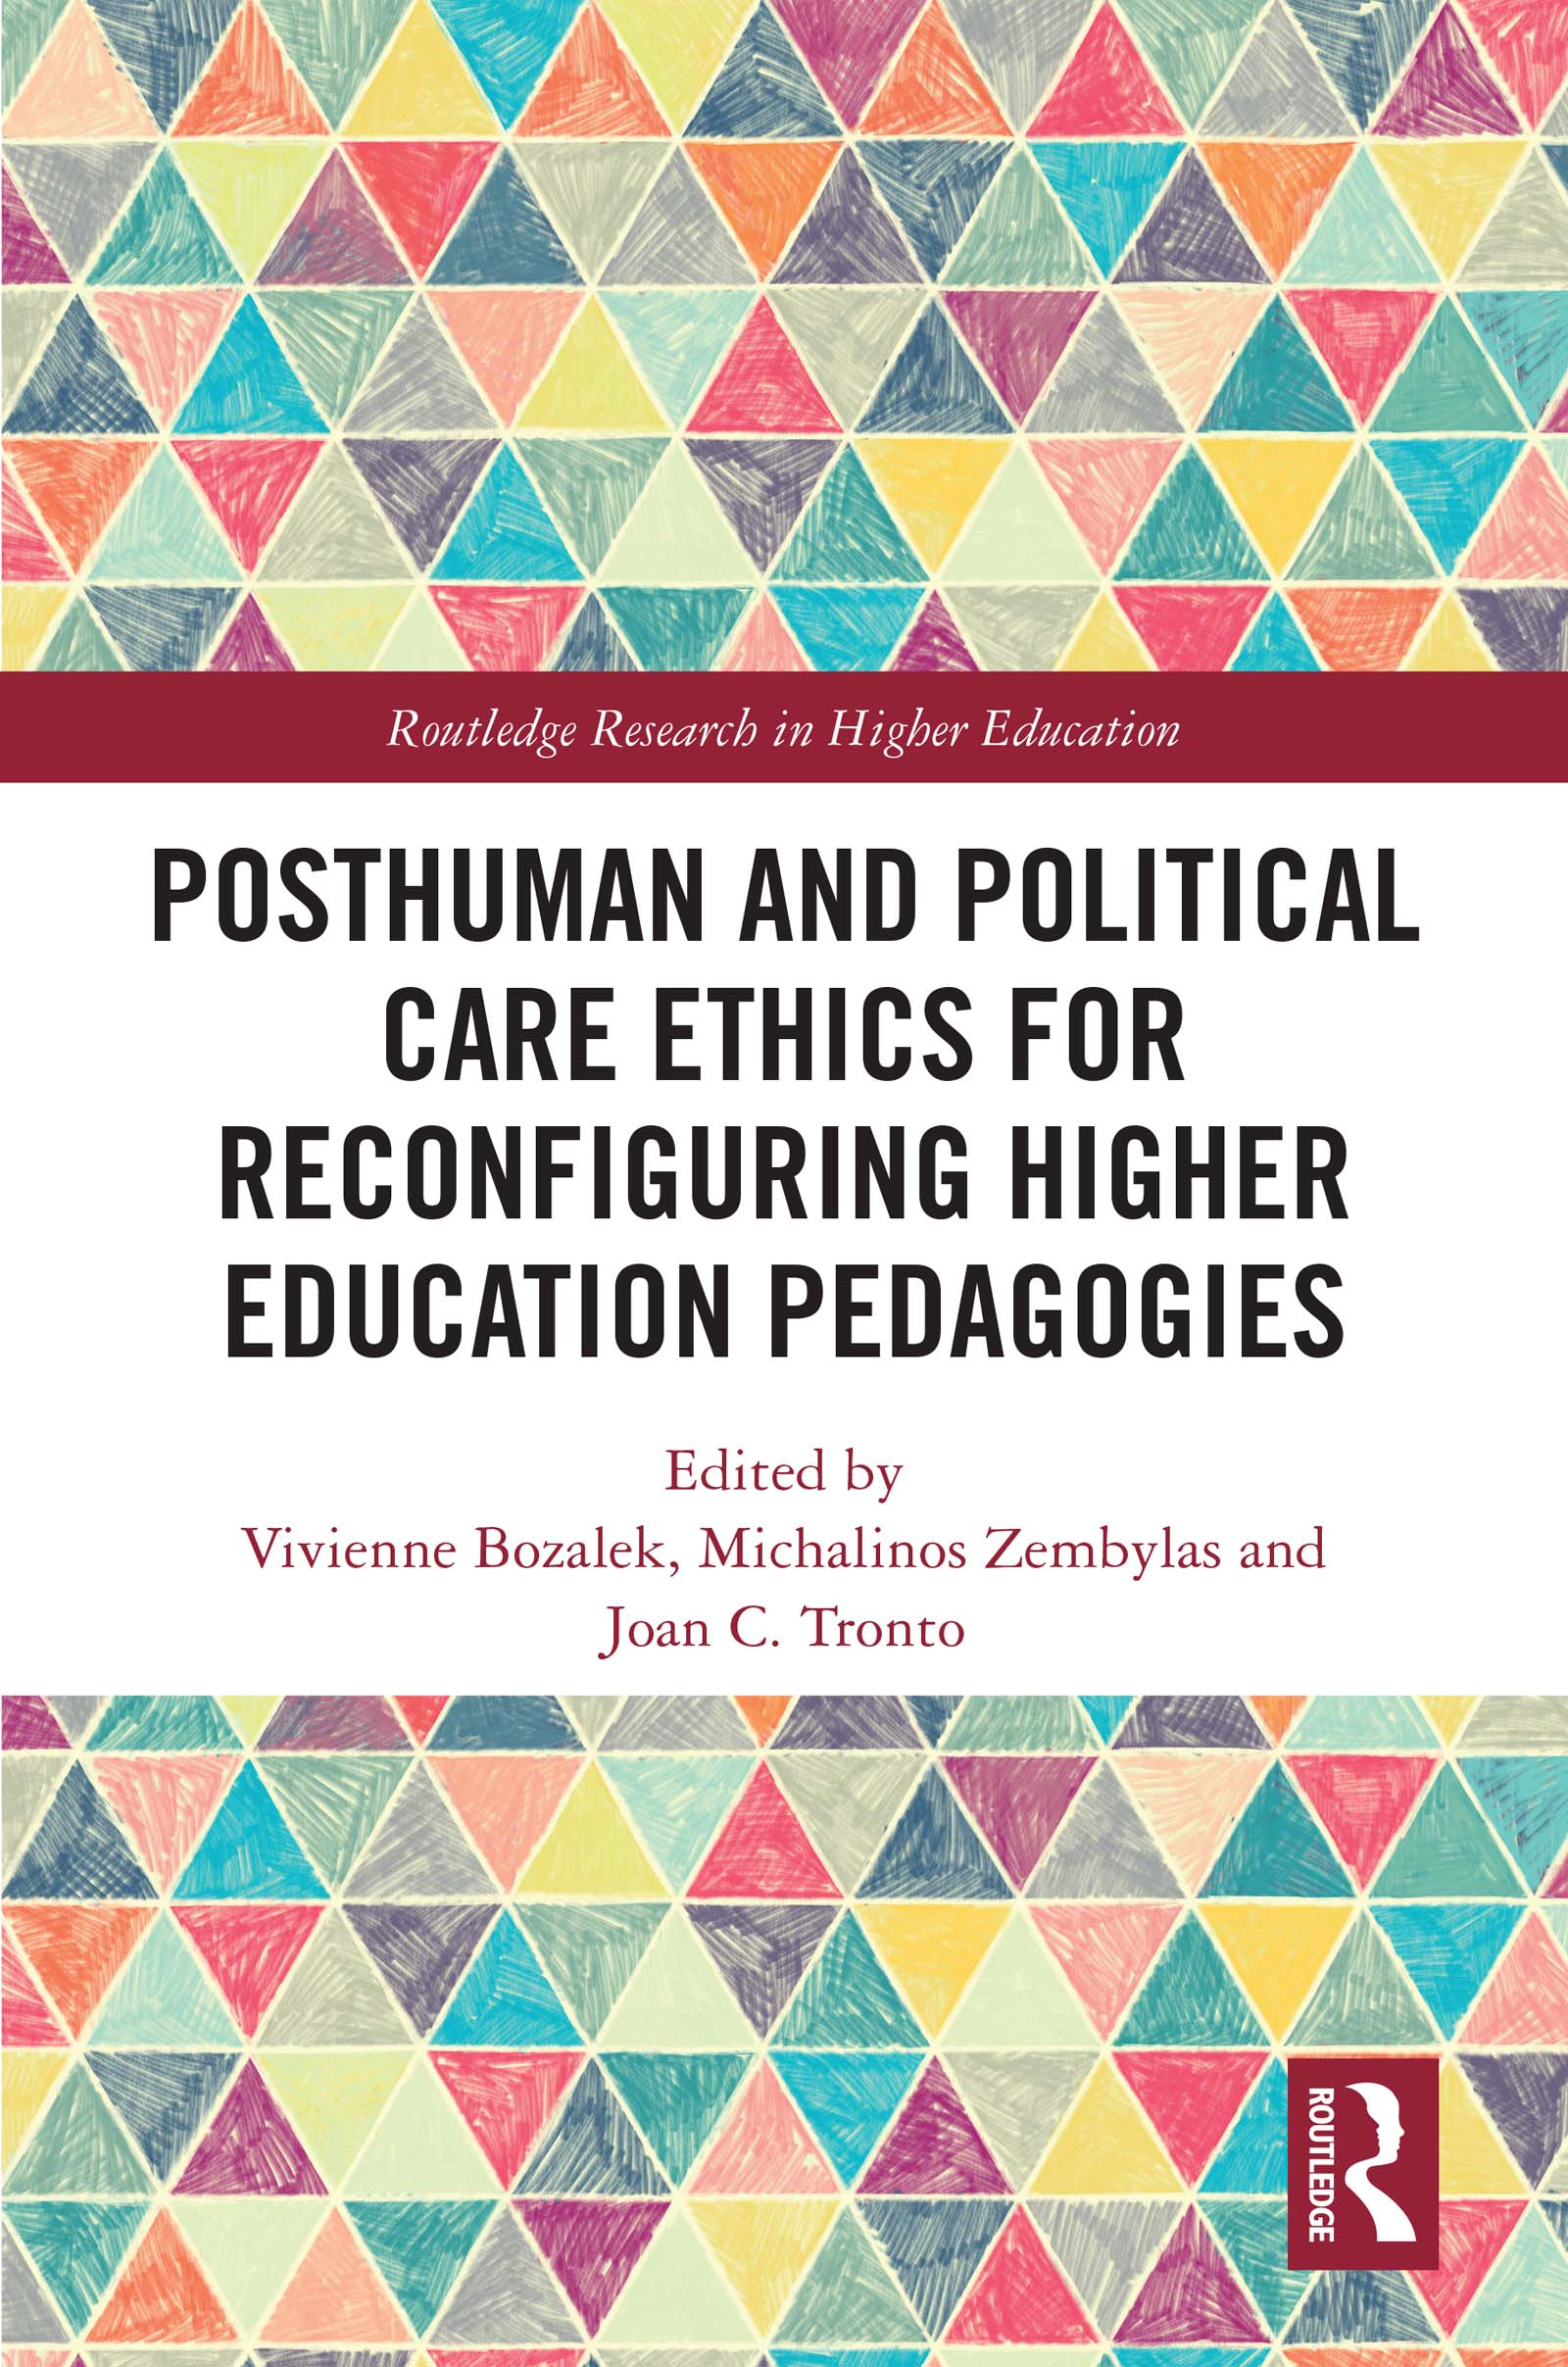 Posthuman and Political Care Ethics for Reconfiguring Higher Education Pedagogies